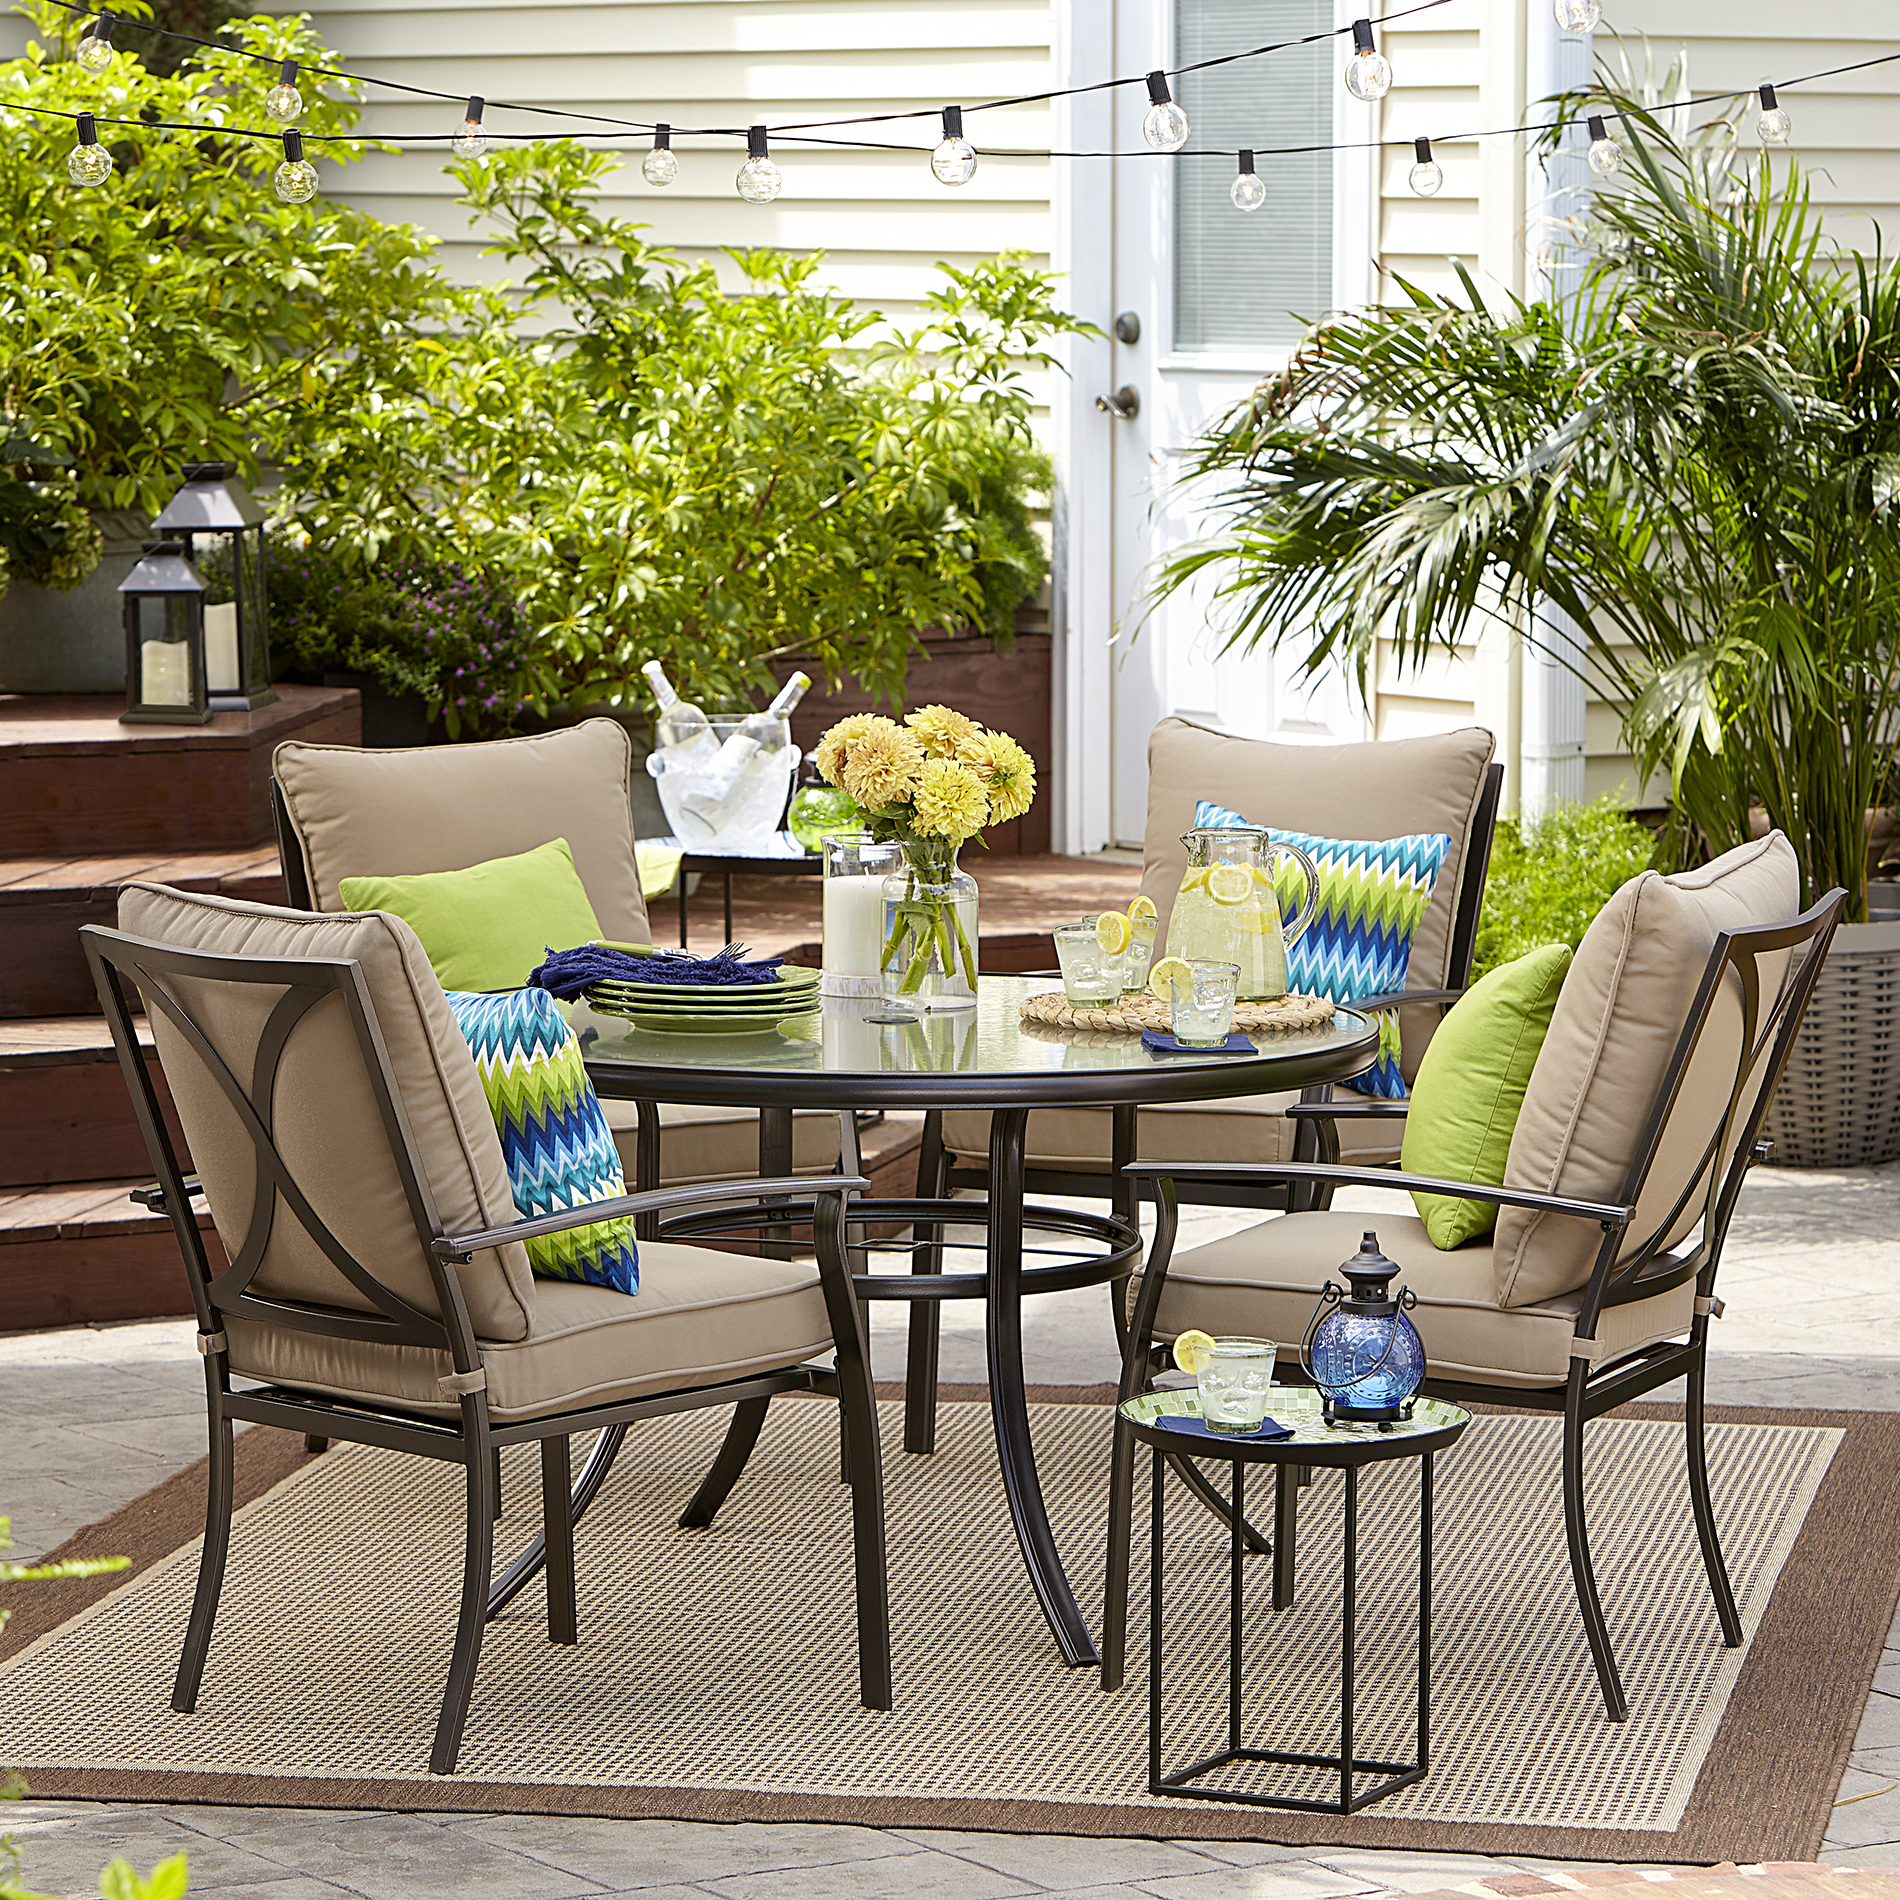 Garden Oasis Harrison 5 Piece Cushion Dining Set - Tan